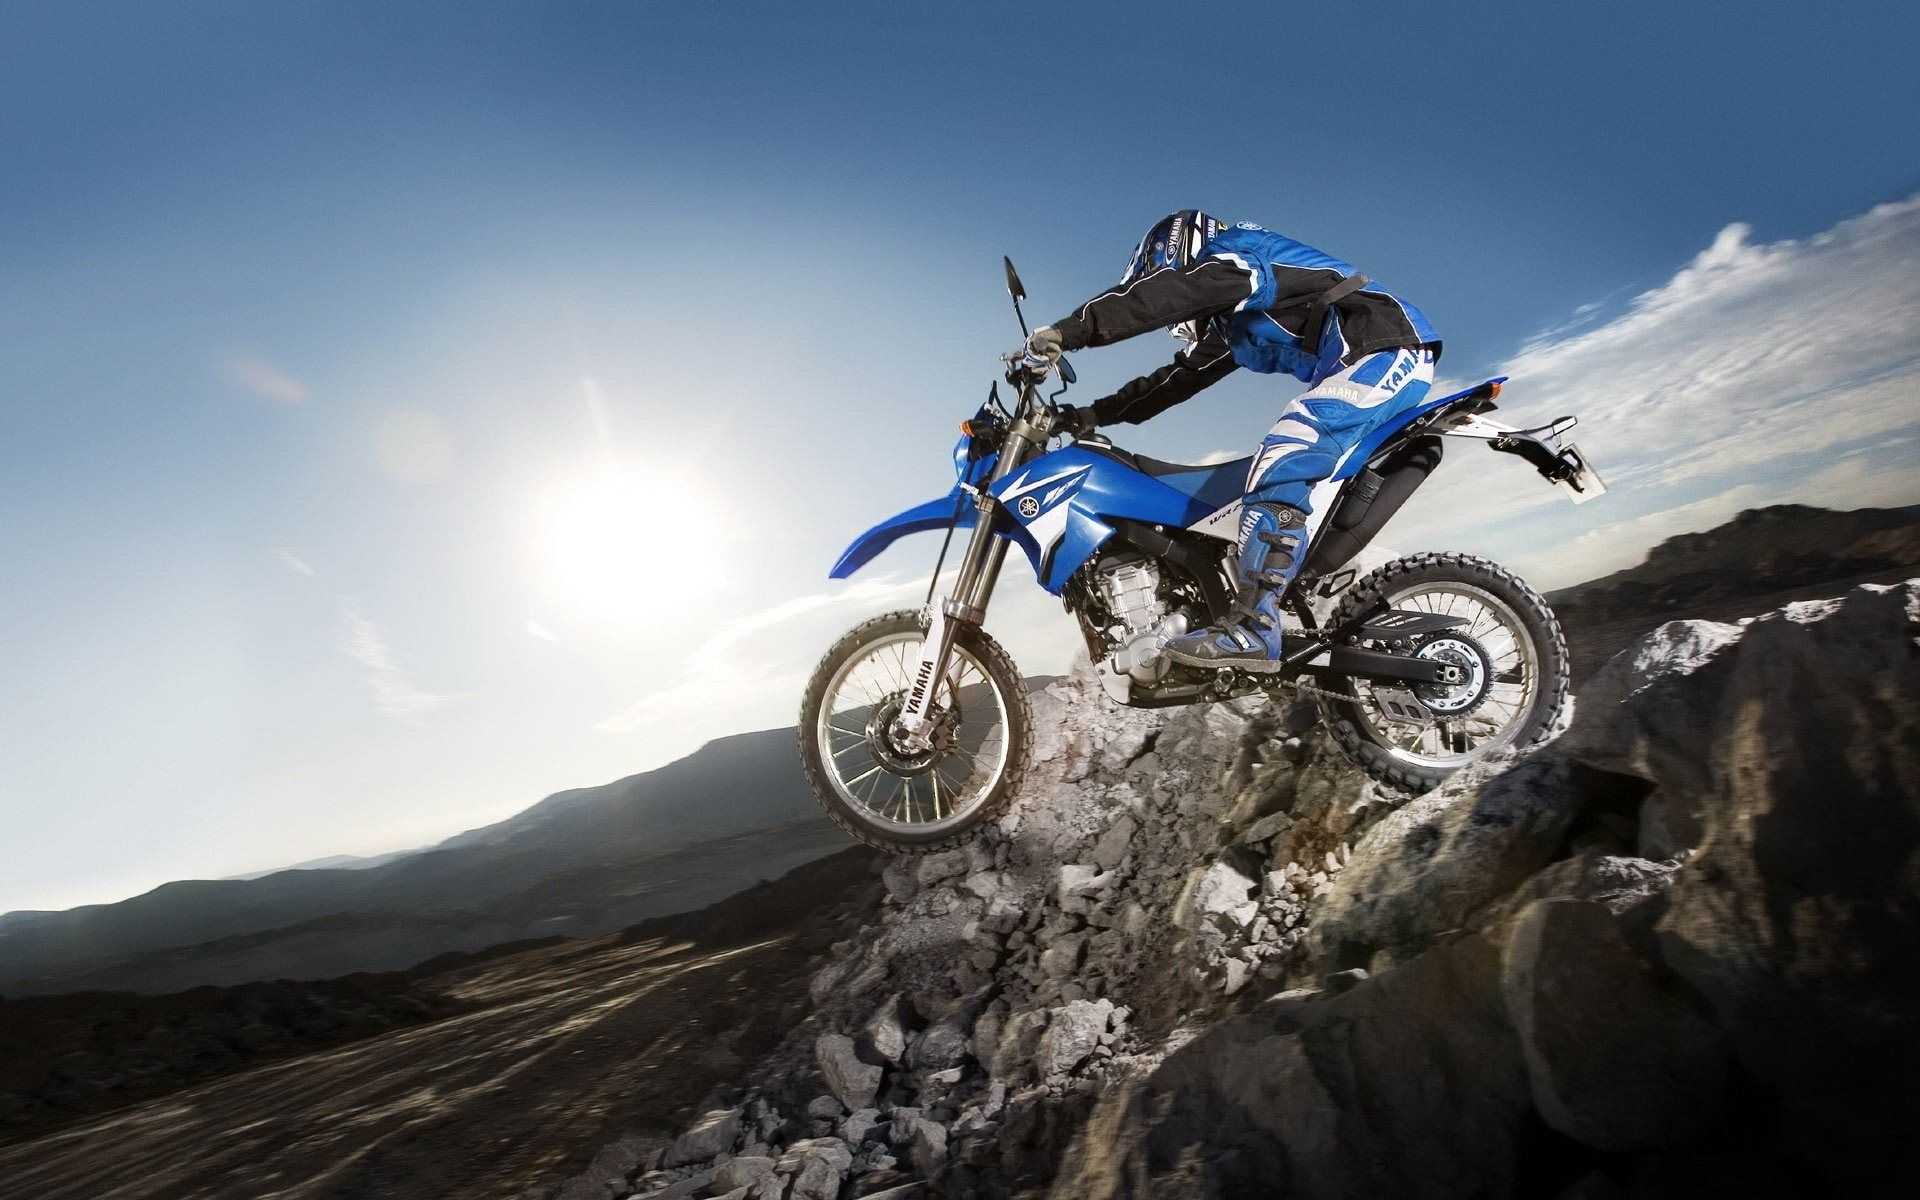 Off Road Motorcycle Wallpaper Hd Widescreen Motorcycle